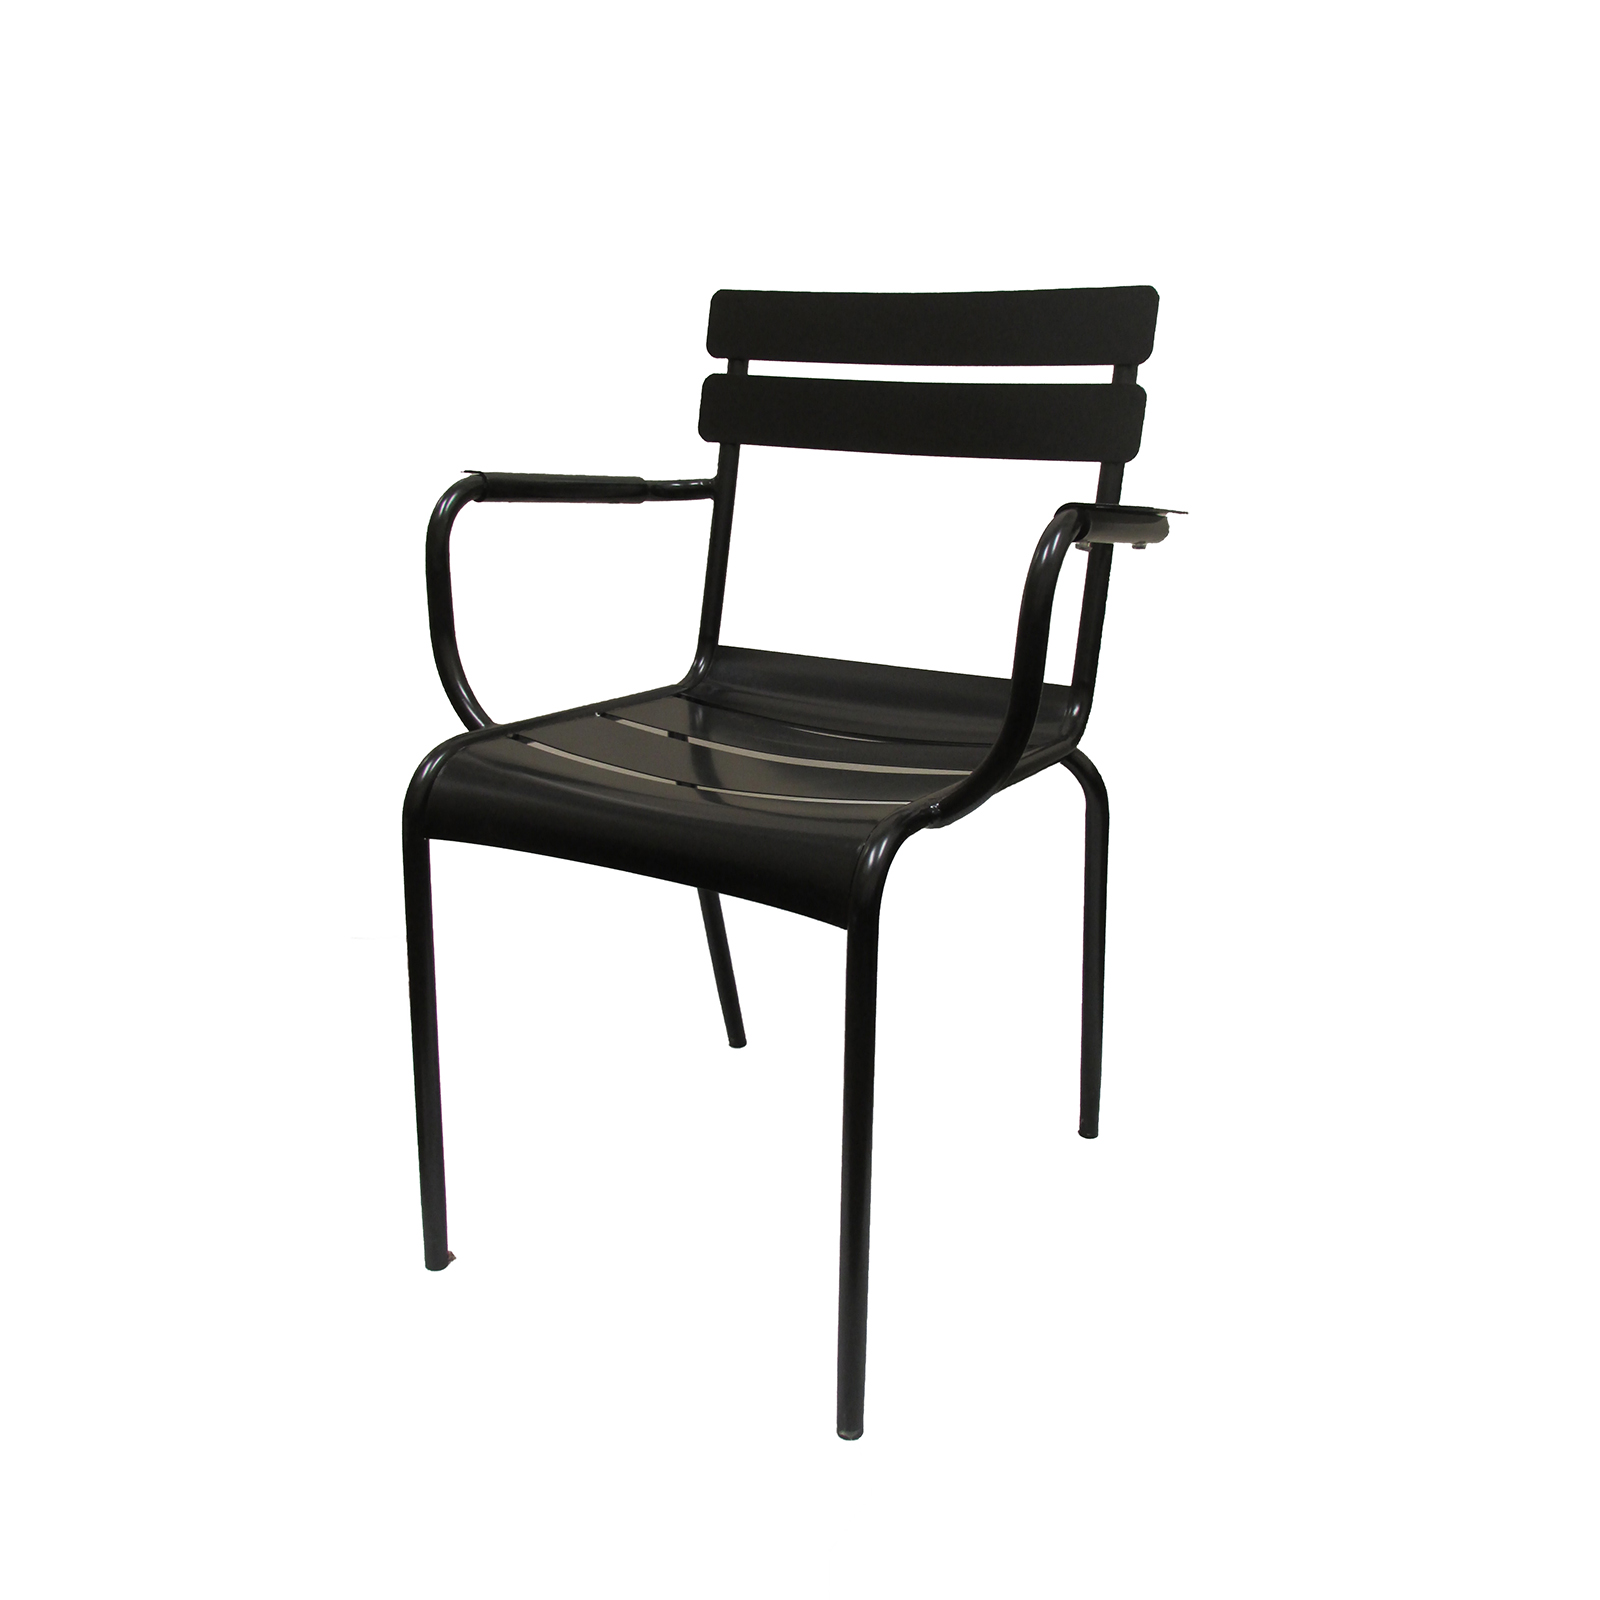 Oak Street CM-825 chair, armchair, outdoor